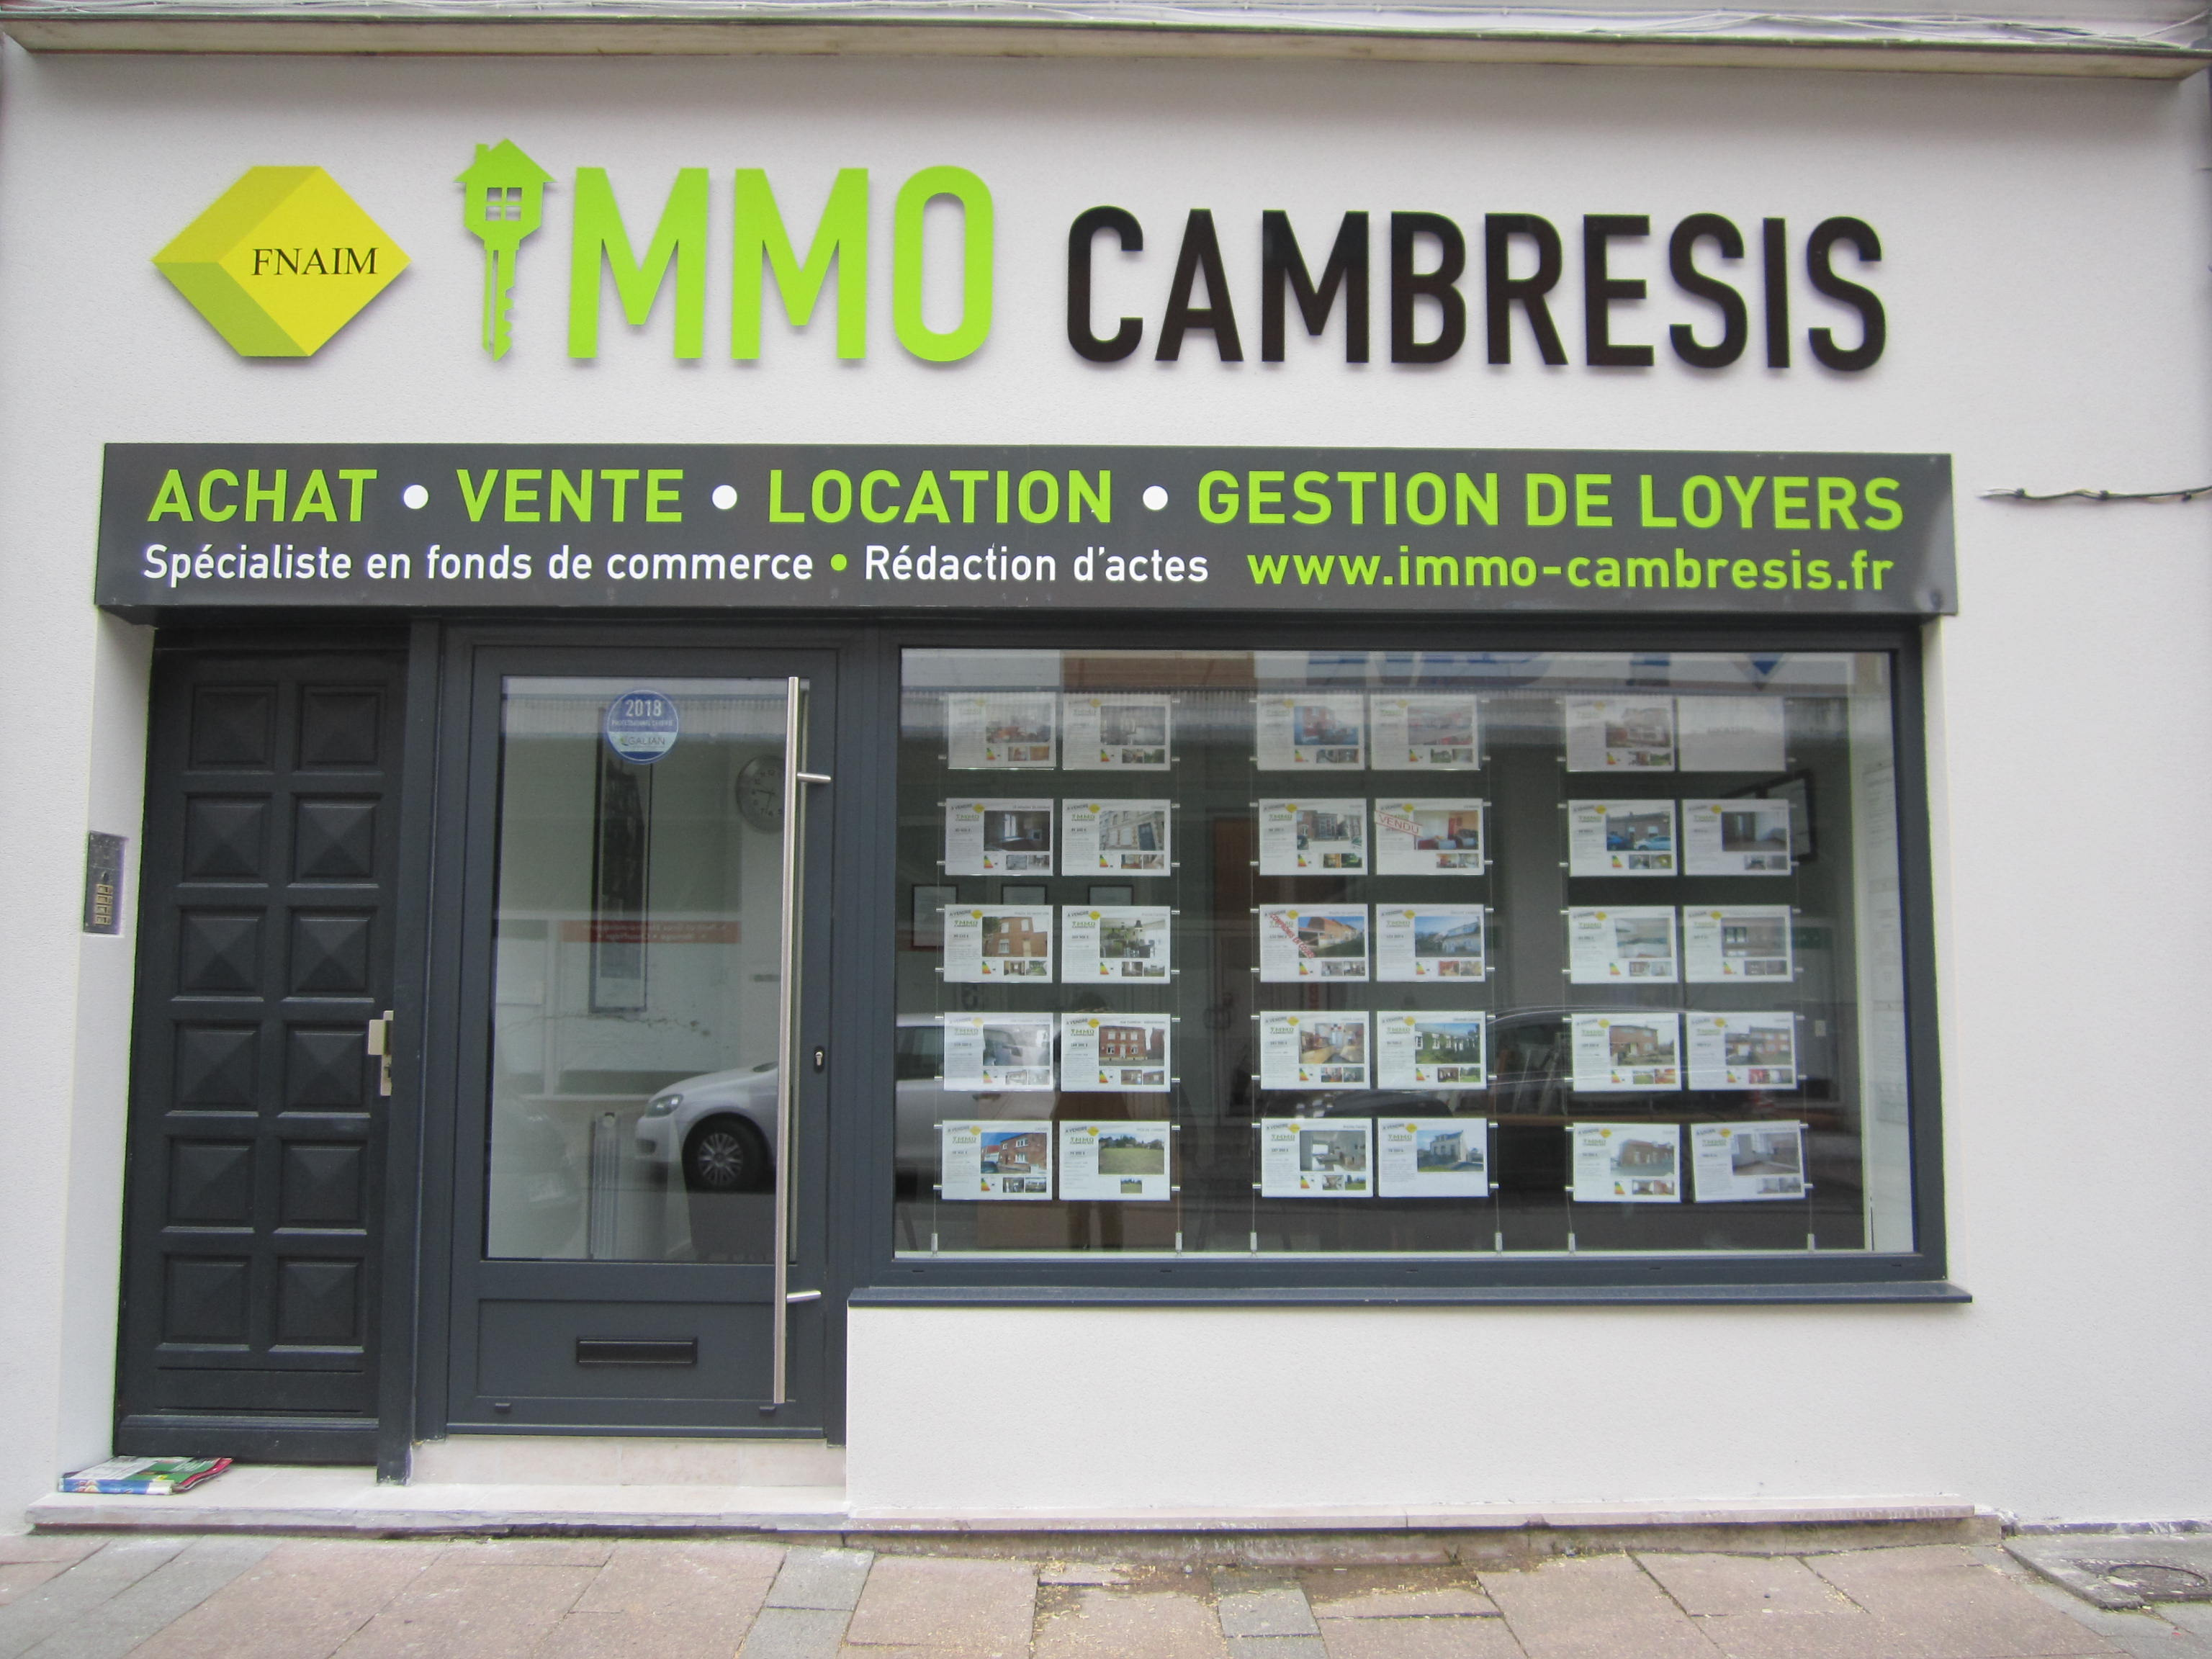 Immo Cambresis agence immobilière Caudry (59540)